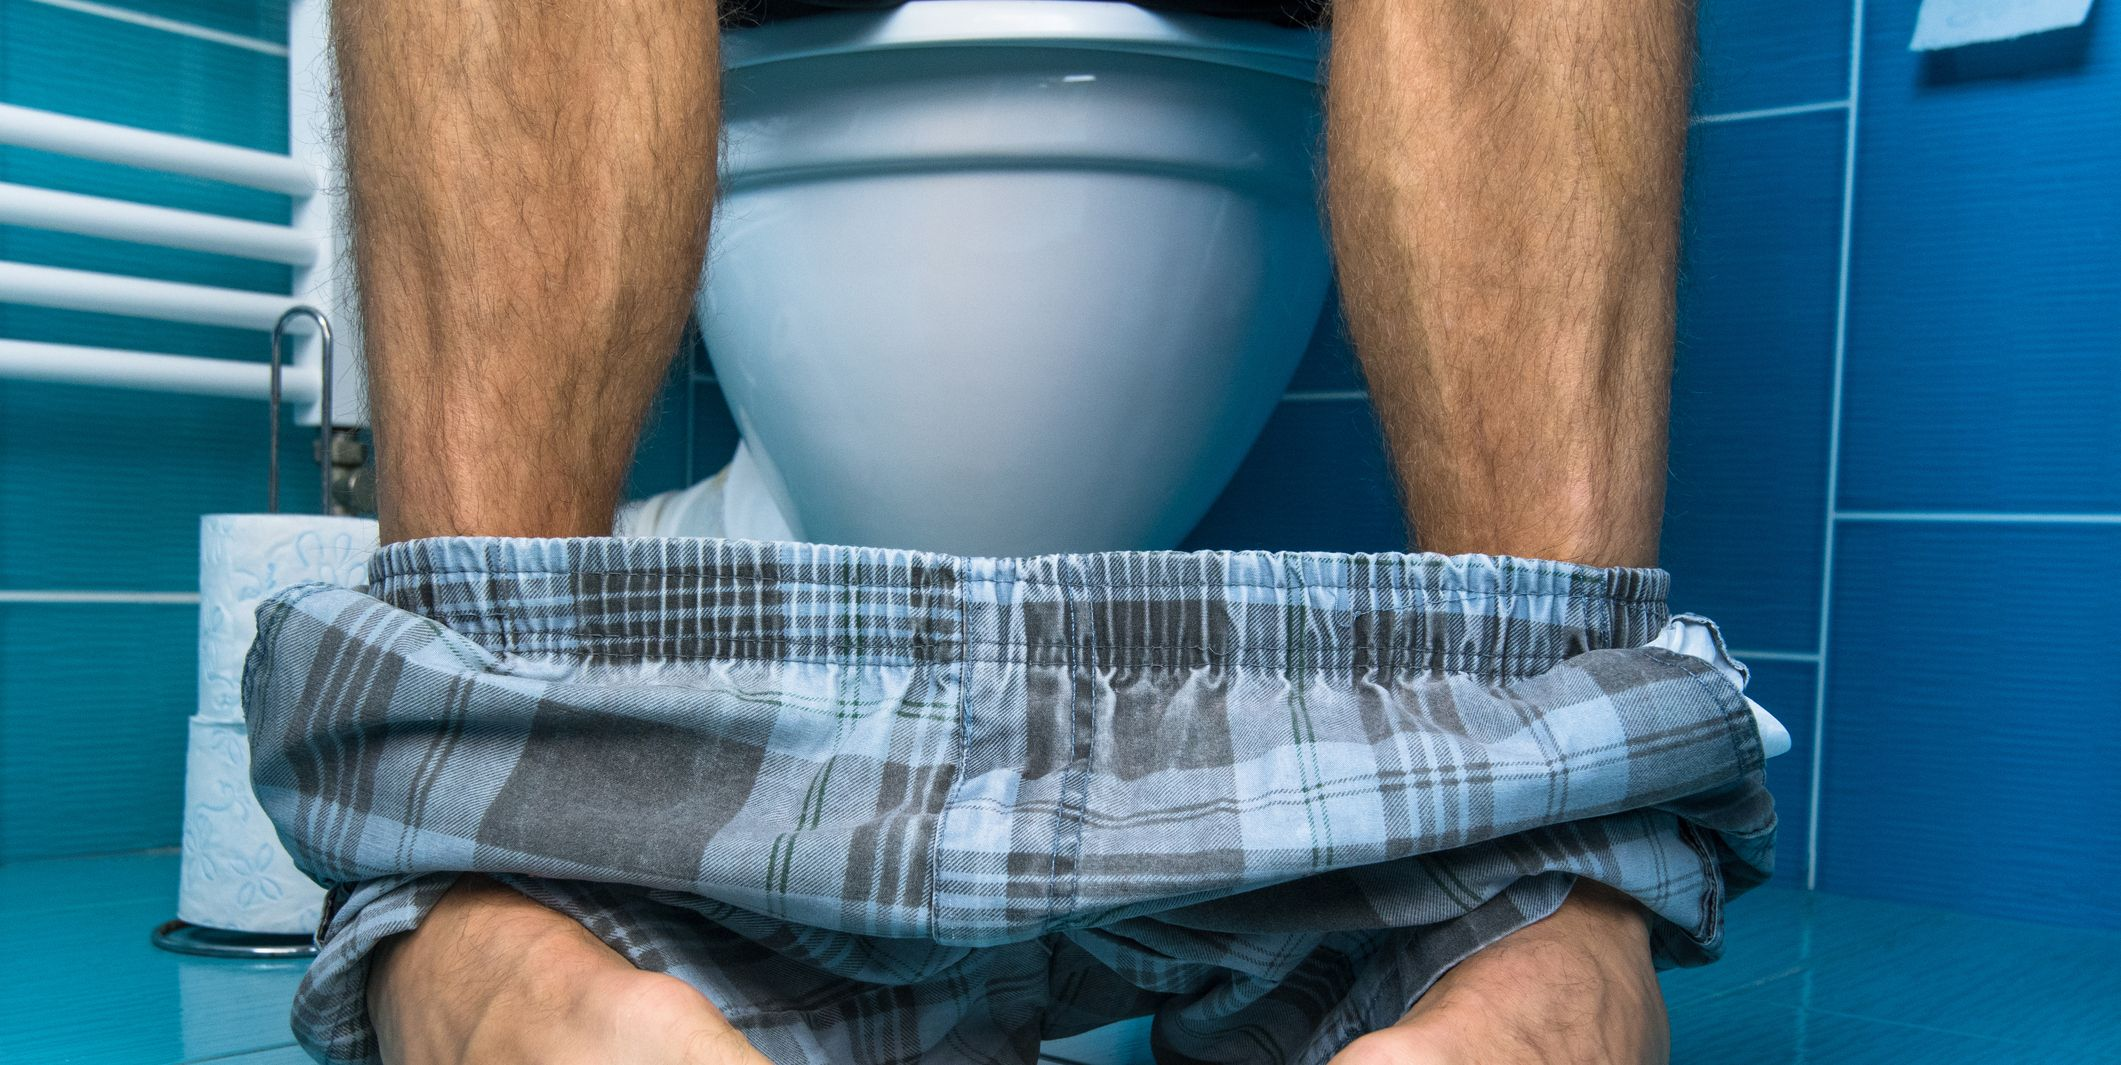 A man sit on the toilet.